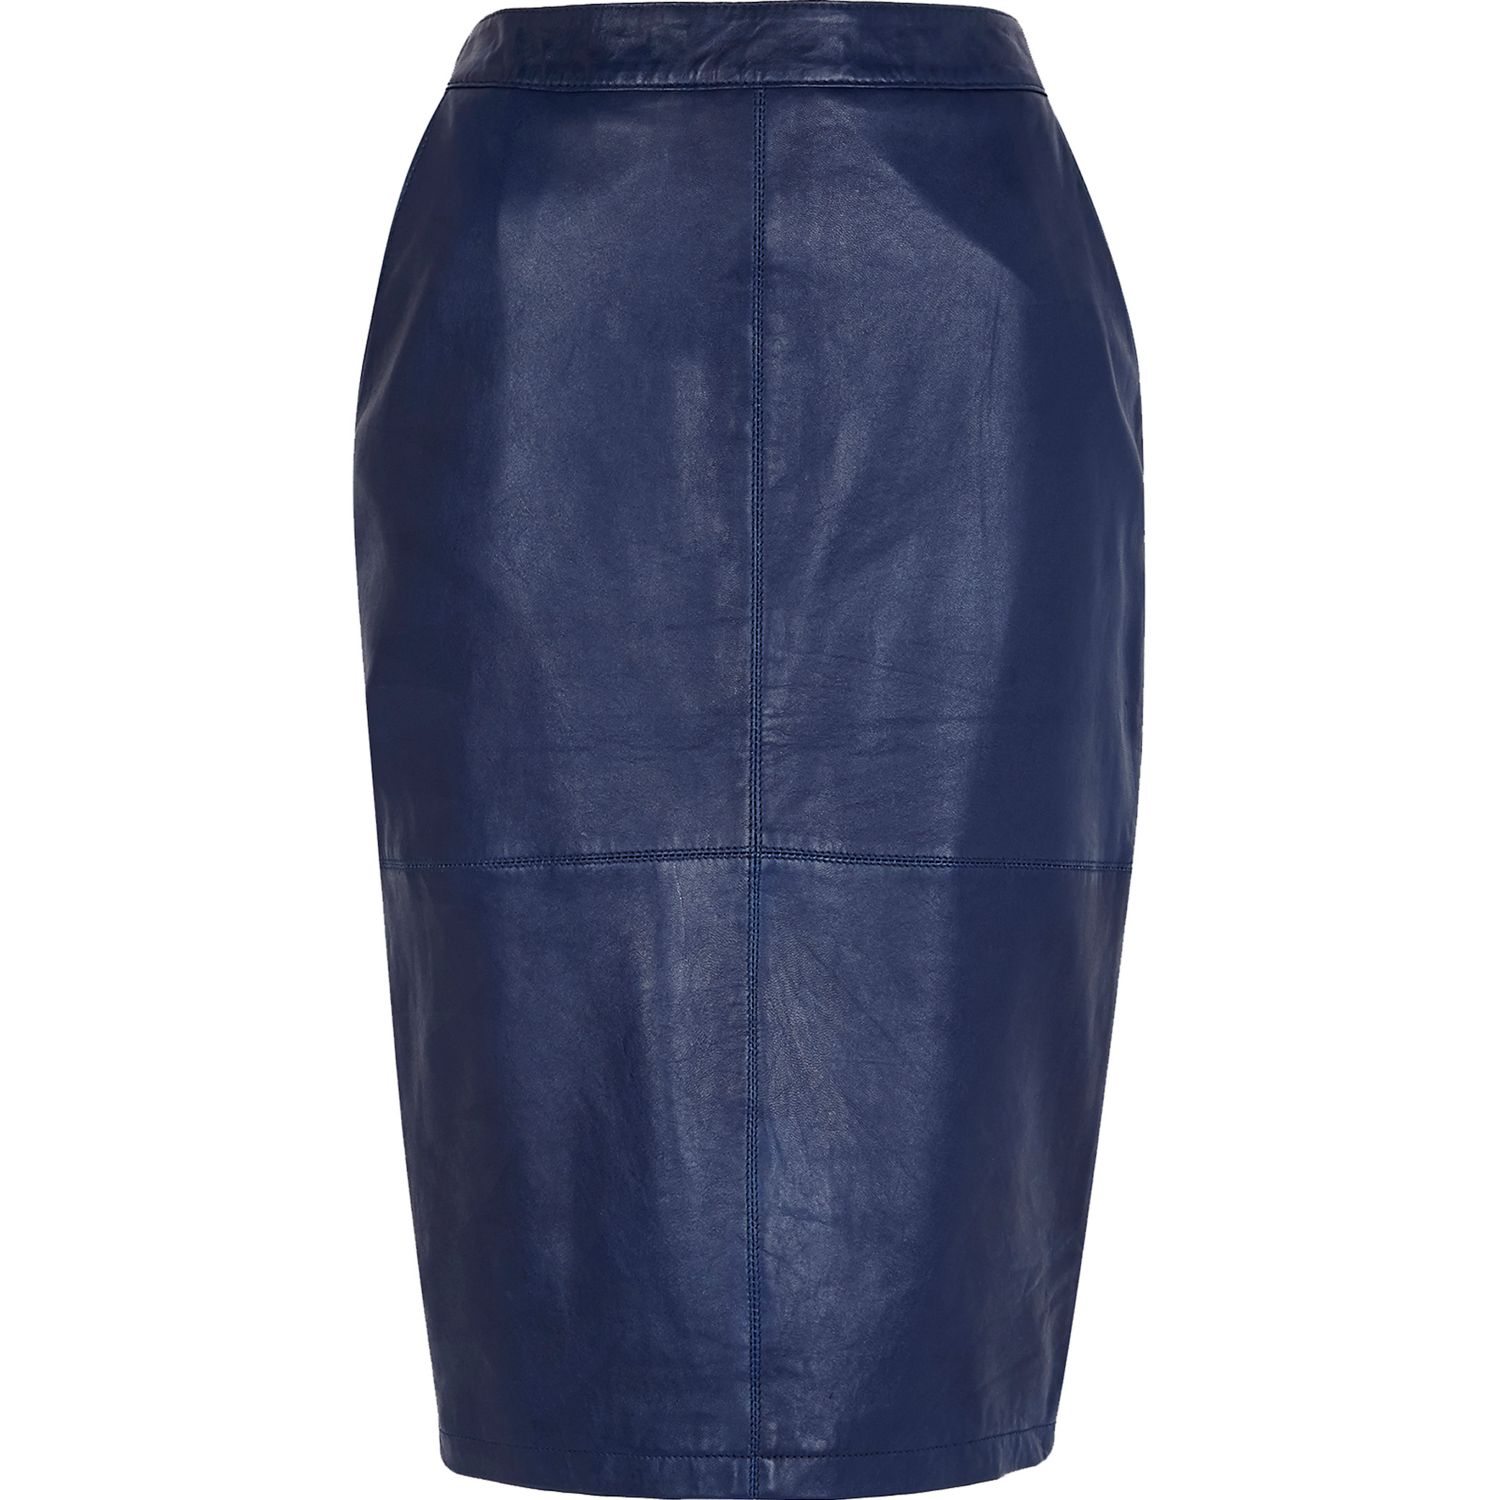 River island Navy Leather Pencil Skirt in Blue | Lyst